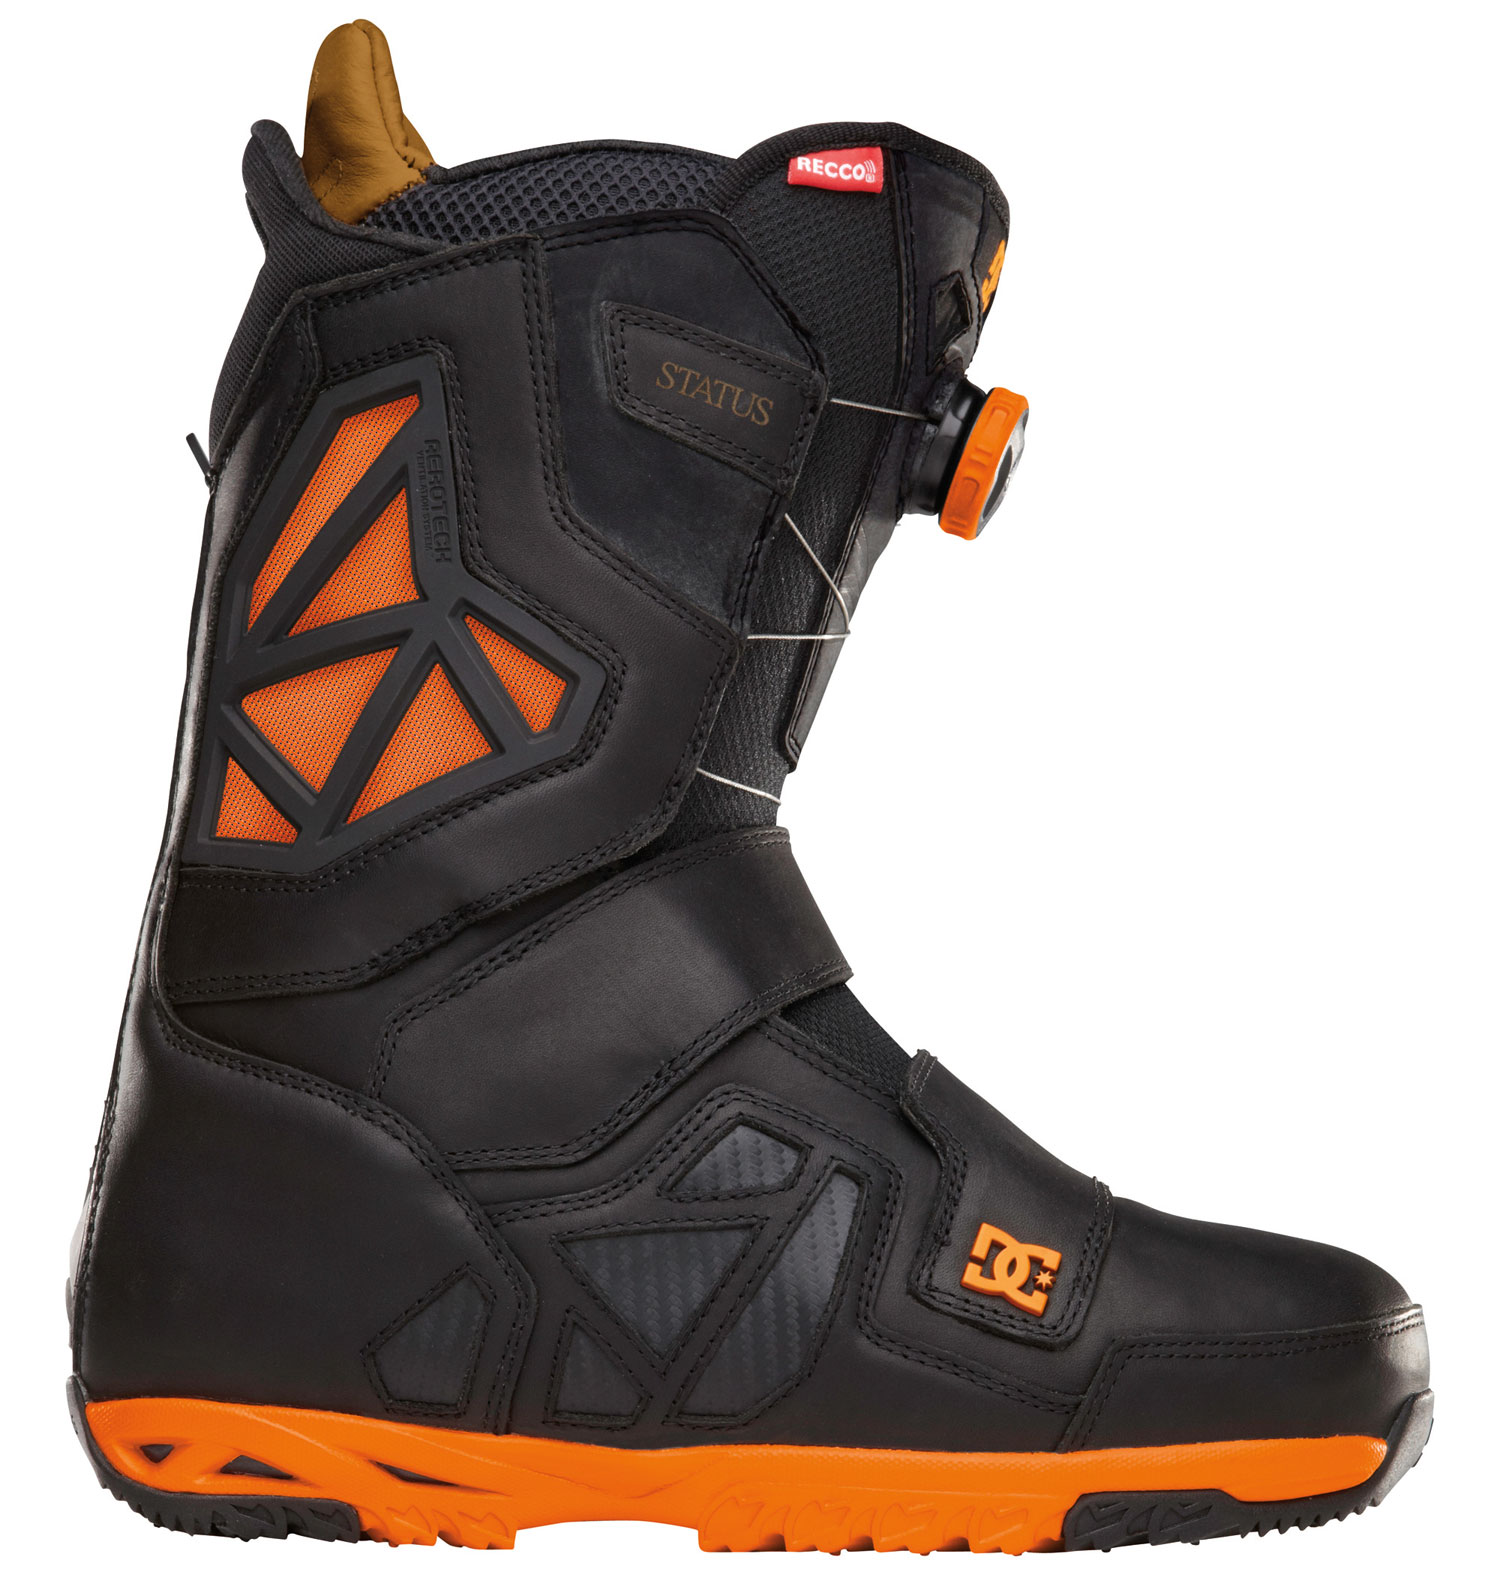 "Snowboard ""A well equipped, supportive boot that breaks in the first day but doesn't get sloppy. Flex where you want it, support where you need it. The in-out convenience of boa technology and a smaller profile for less drag. Stay warmer and dryer with aerotech liners."" - travis riceKey Features of the DC Travis Rice Status BOA Snowboard Boots: Flex: 9 Full Grain Leather Aerotech Ventilation System: molded vents in the shell and liner work in unison to release unwanted moisture away from the riders foot. this proprietary system will keep your feet warm and dry and prevent bacteria build up. Constrictor Closure System 3D Tongue Articulation Molded backstay Internal Ankle Harness UniLite™: DC's proprietary outsole technology, UnILIte provides traction, durability, dampening, and cushioning all while drastically reducing weight. UnILIte soles feature distinct traction patterns for ascending, descending, and skating around with our Push Zone tread pattern. the snow-shedding traction designs also prevent snow from building up and clogging bindings. ImpactG™: For the ultimate in comfort we incorporate ImPaCt G, our proven impact absorbing system that does not change properties under varied temperatures or climates Boa® Coiler Alpha Liner: multi density zones, neoprene ankle strap, aerotech system, aegis, full grain leather collar top on status & terrain models, anatomical j-bars - $262.95"